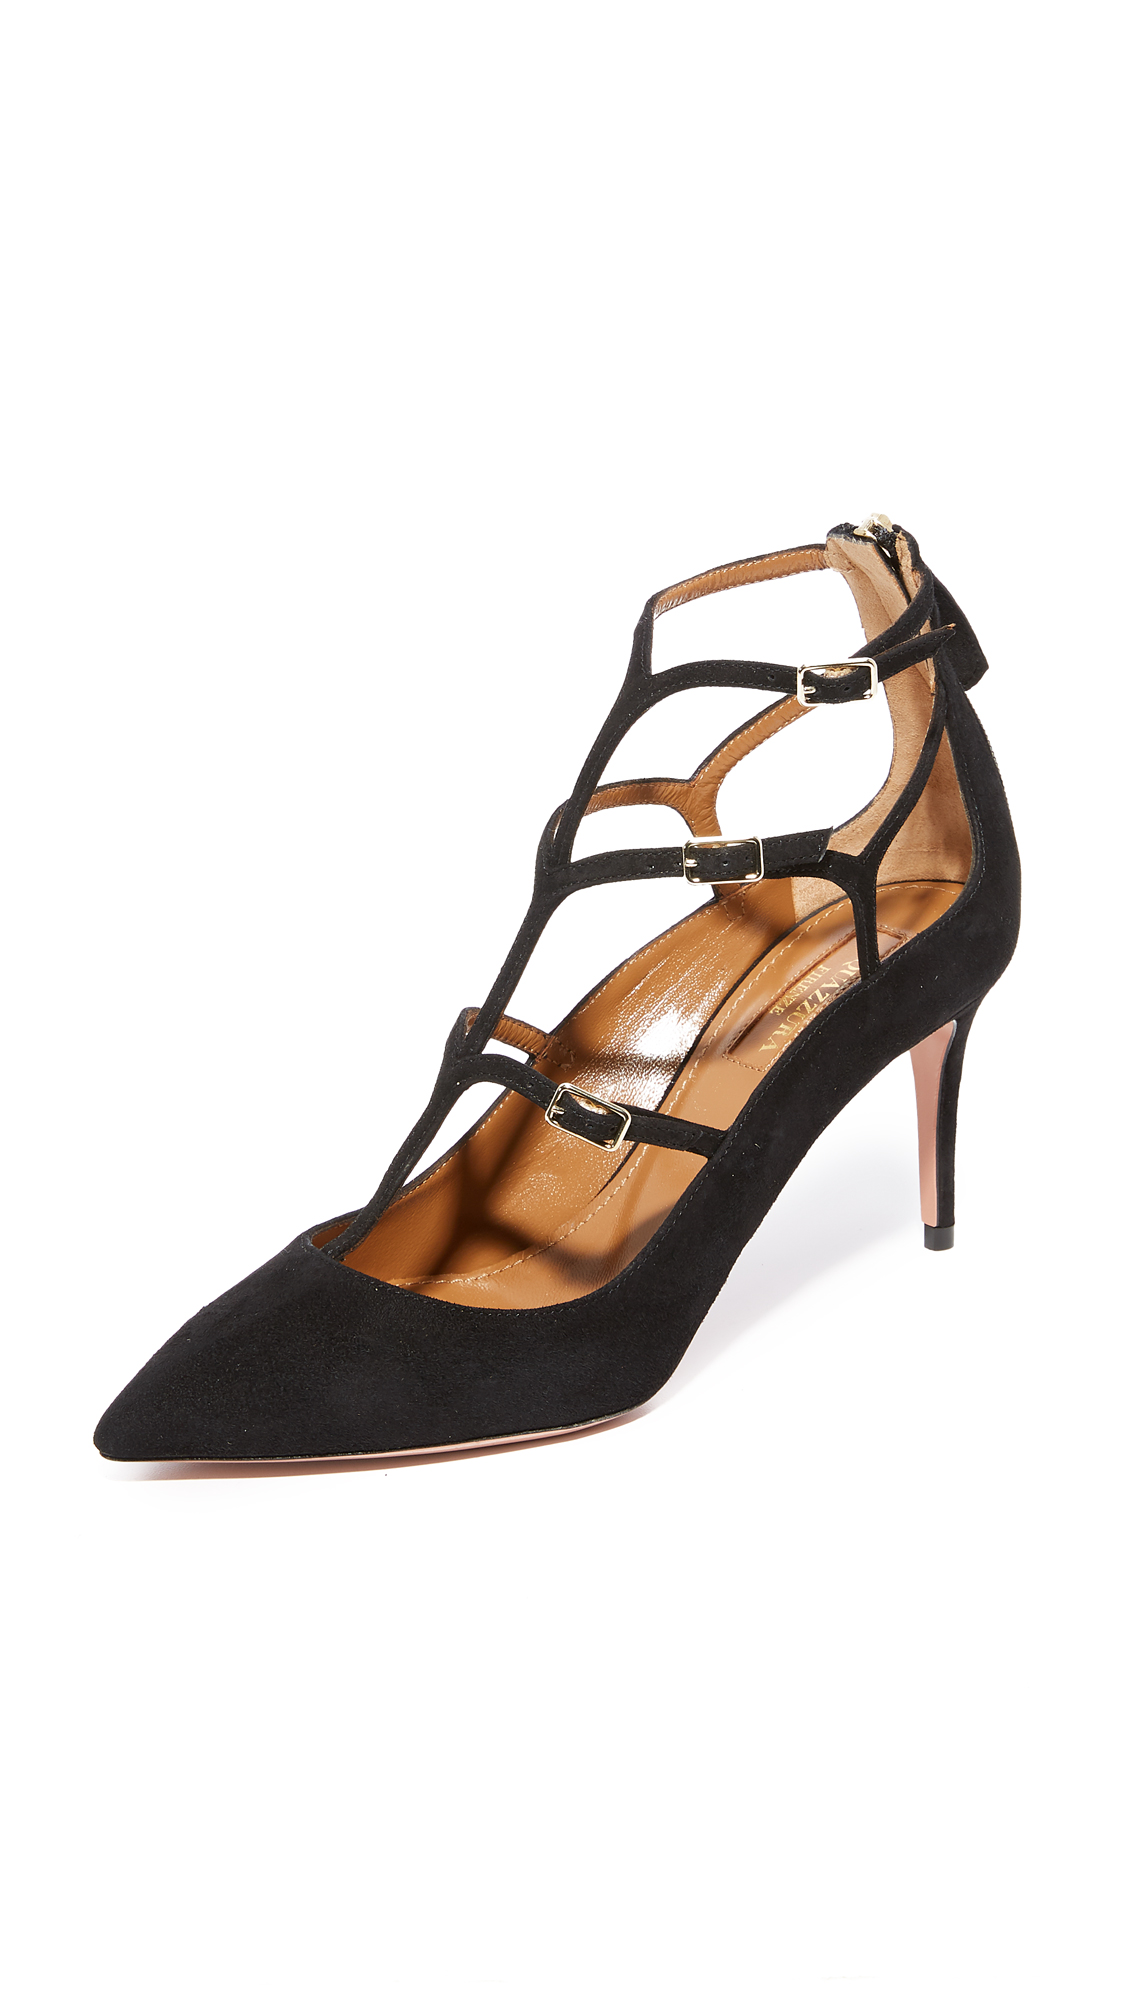 Aquazzura Eternity 75 Pumps